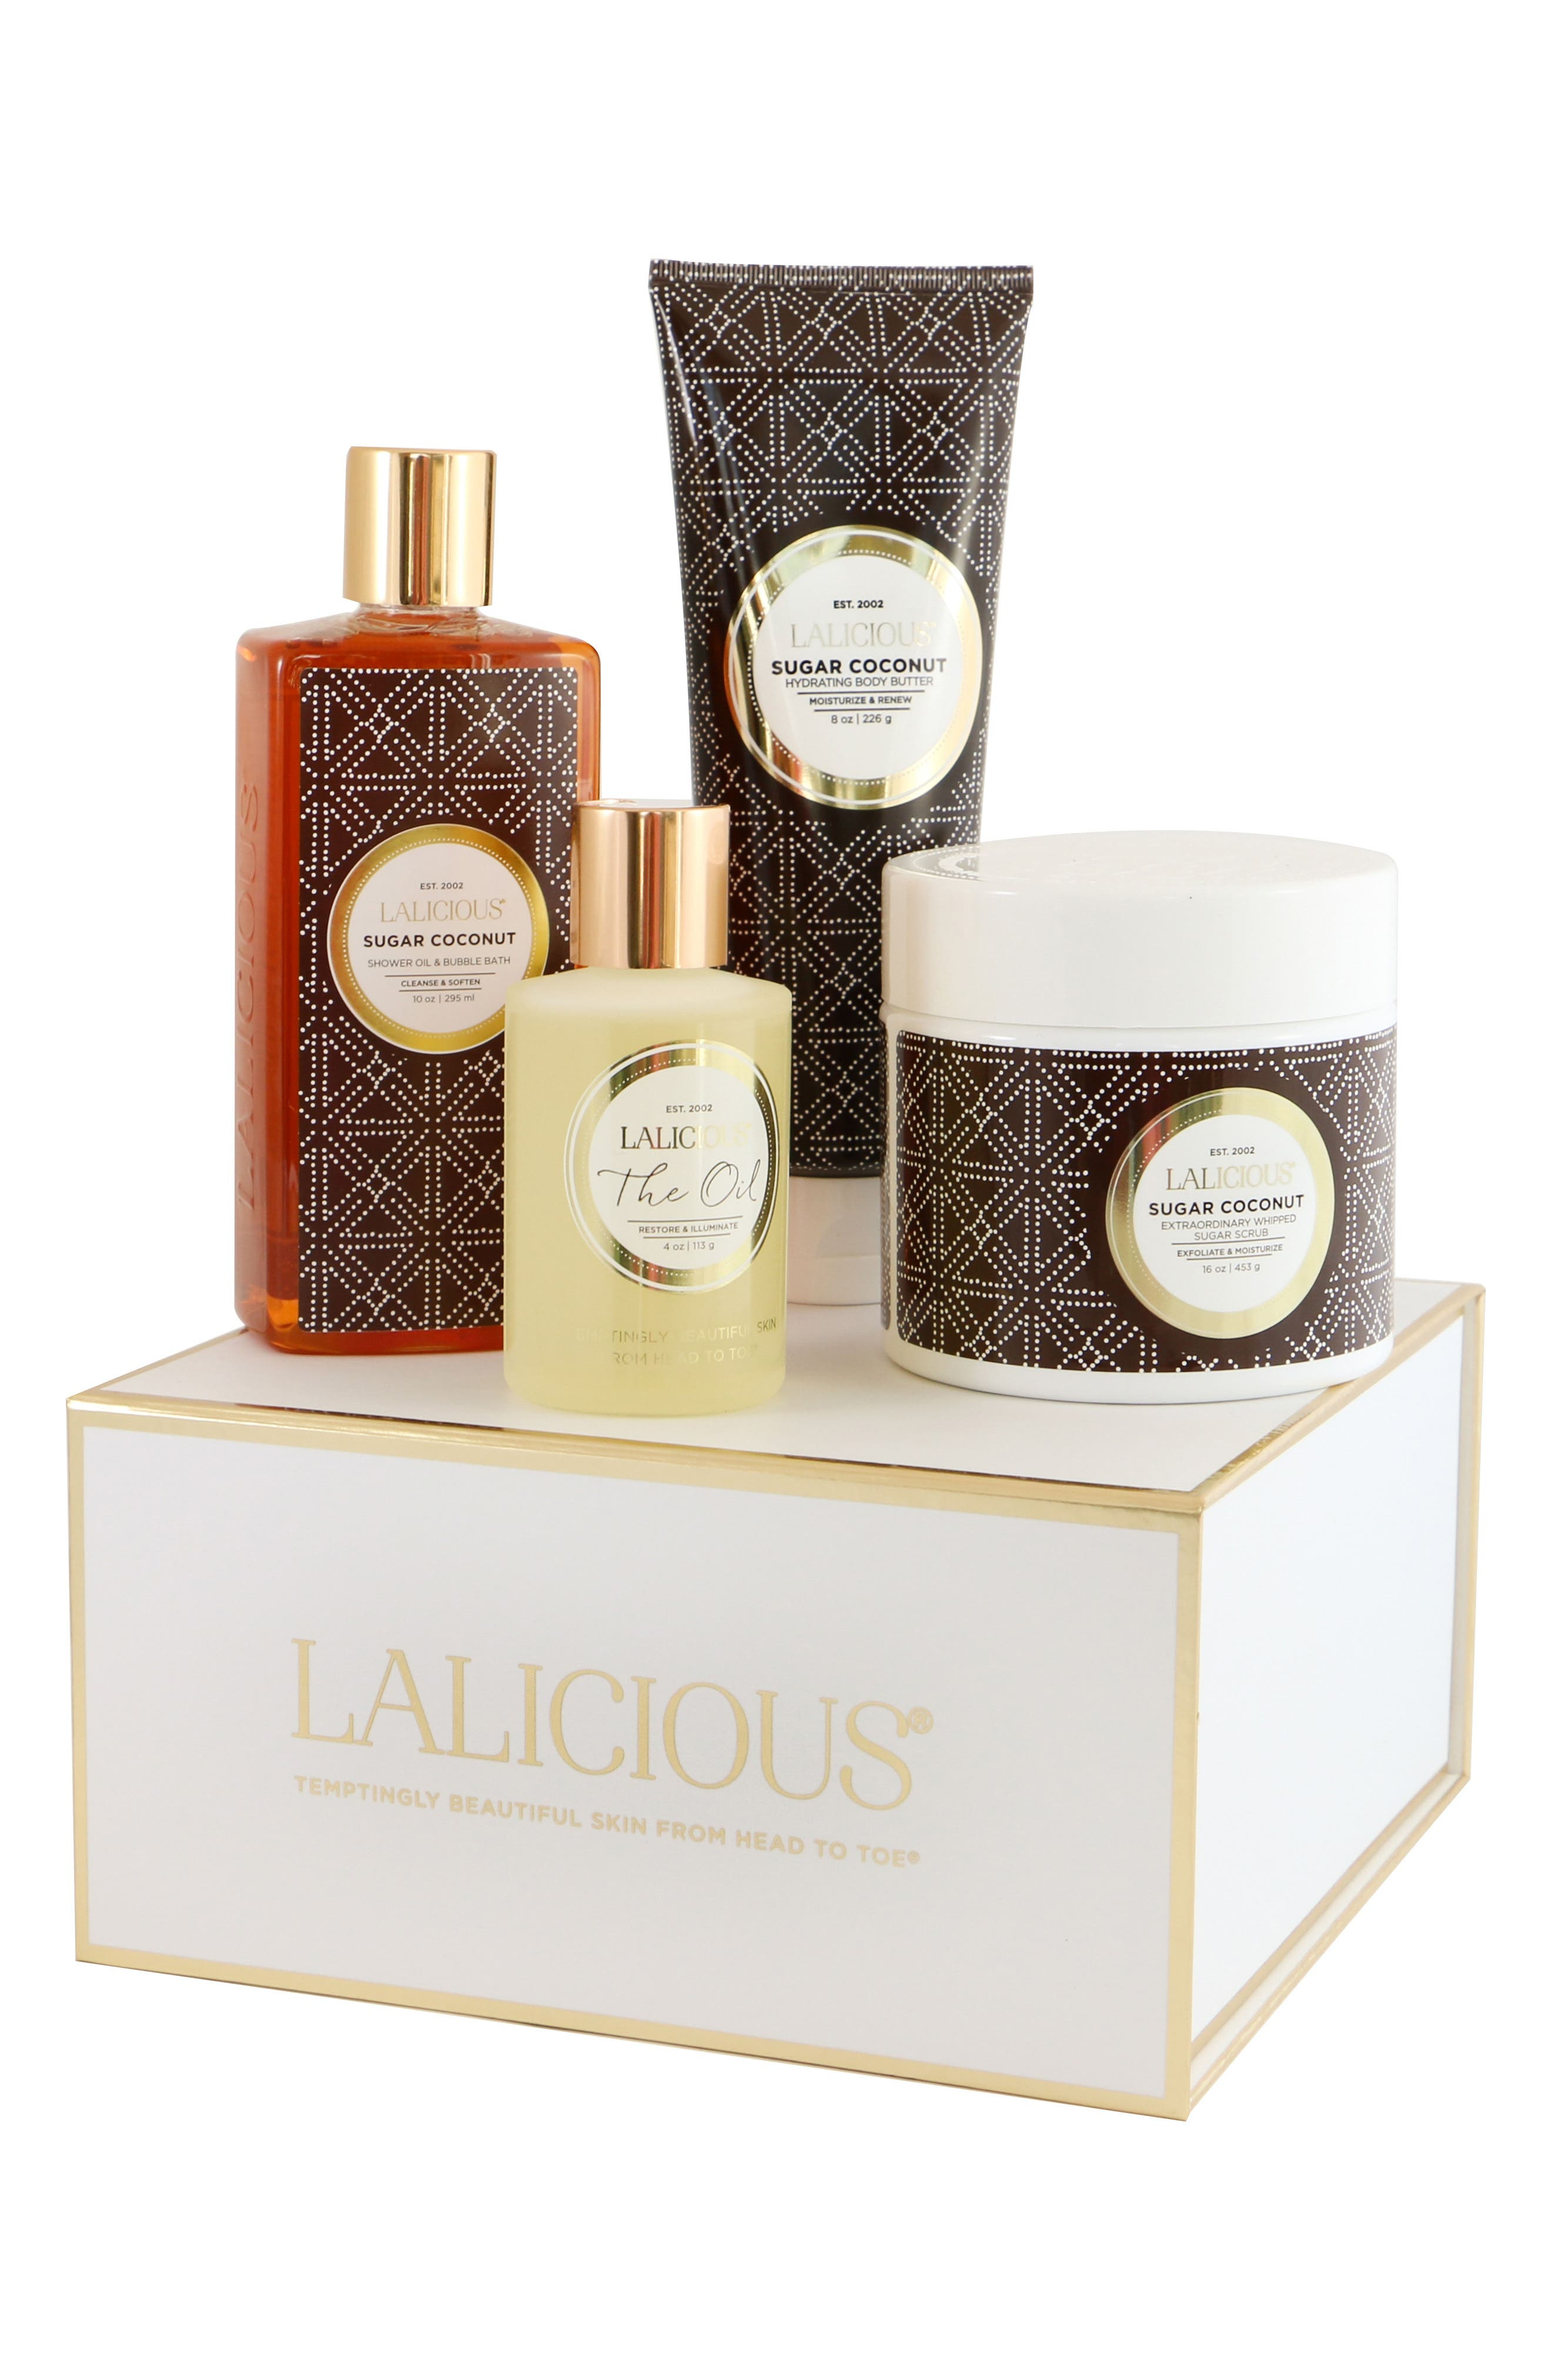 LALICIOUS Sugar Coconut At Home Spa Collection (Nordstrom Exclusive) ($117.50 Value)